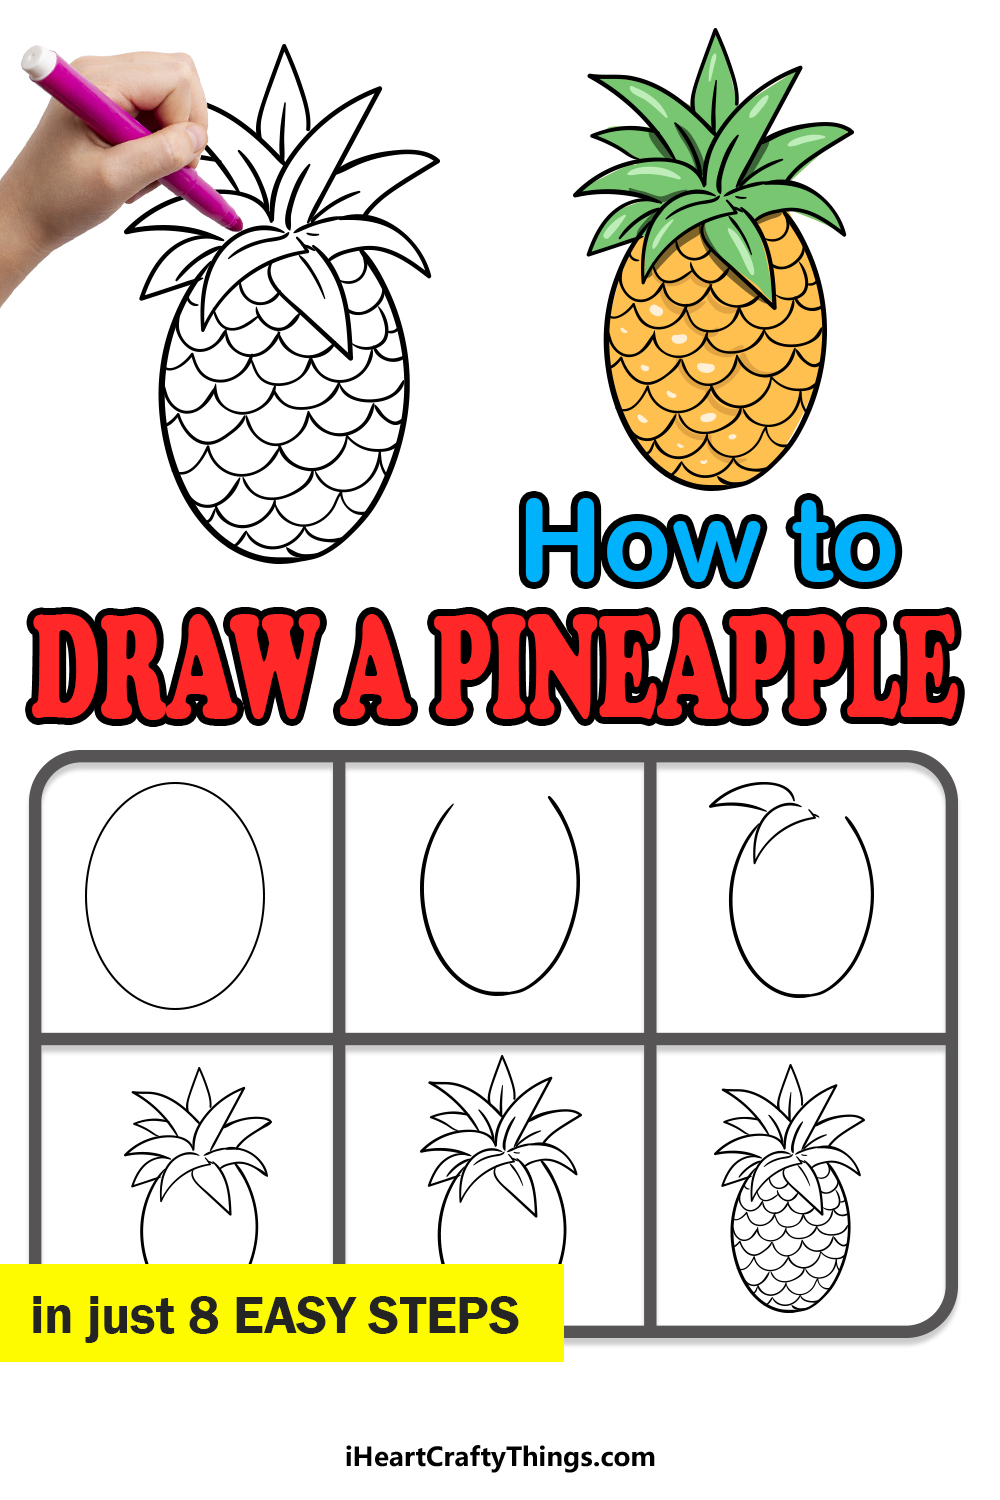 how to draw a pineapple in 8 easy steps